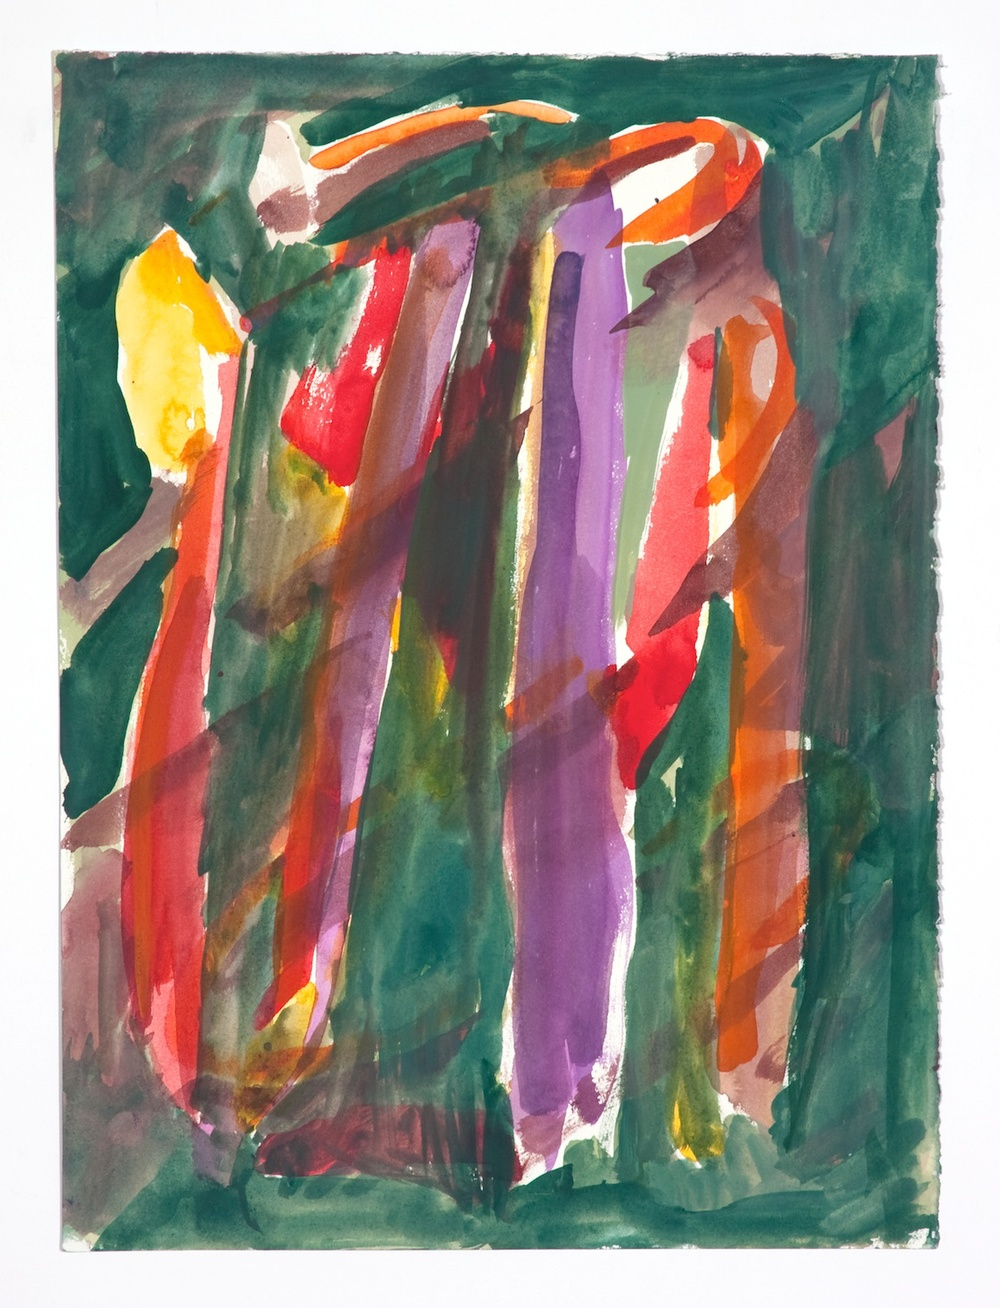 Jon Pestoni  Untitled  2009 Watercolor on paper 15h x 11 ¼w in JP070